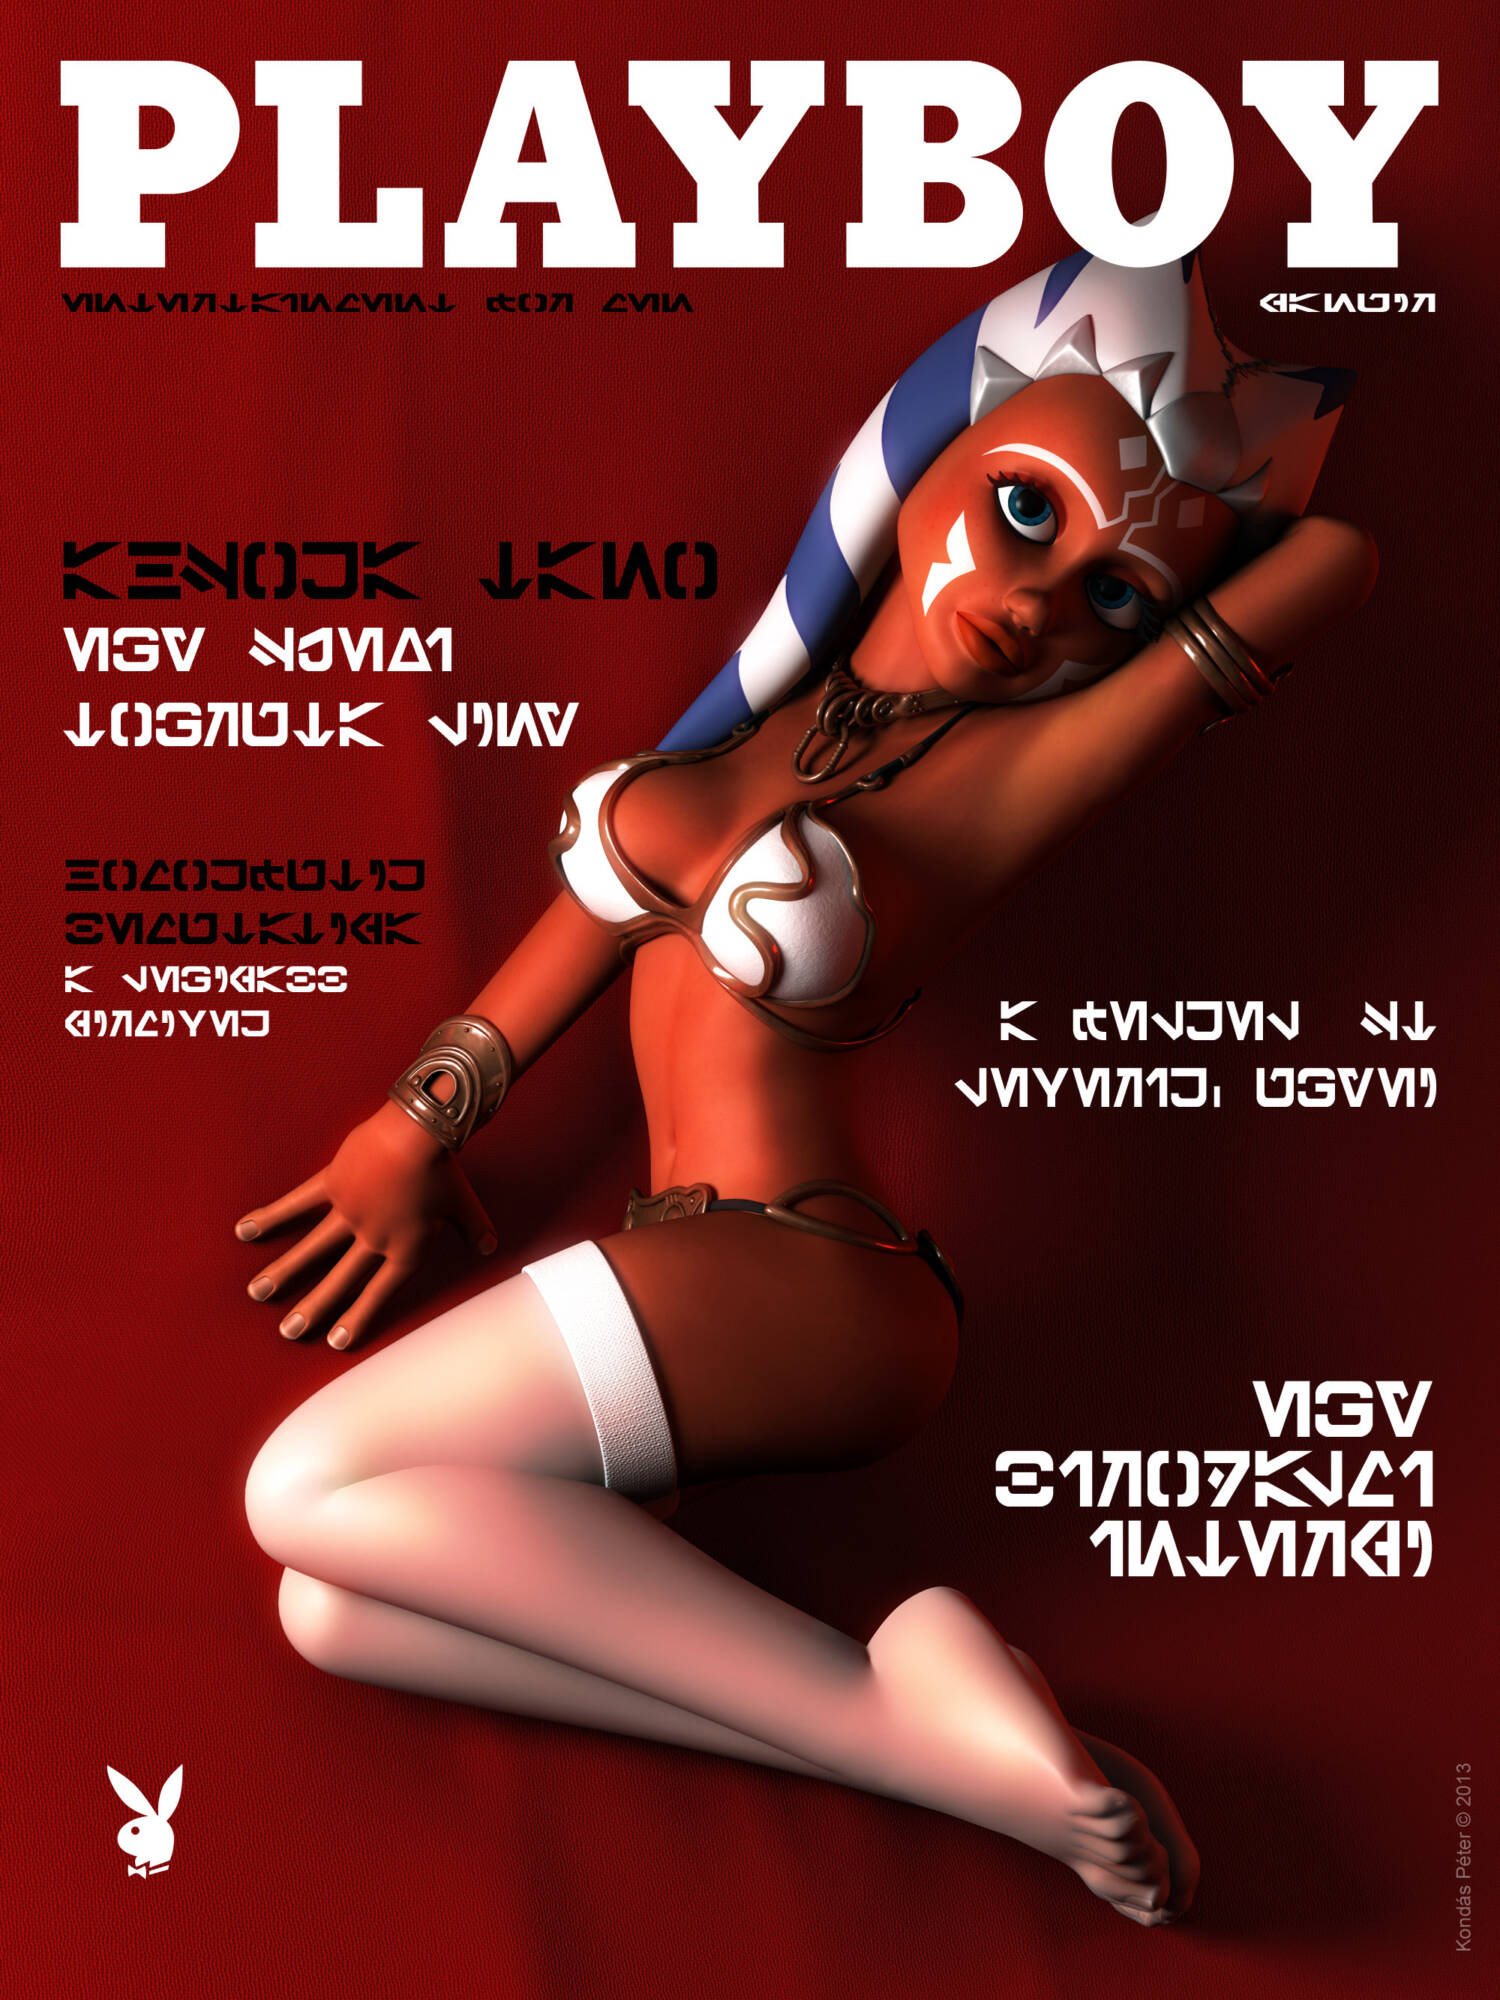 Playboy Covers and Centerfolds - page05 Ahsoka Tano On Playboy Cover A Fox's Tale,Crossover,Planet 51,Smurfs,Star Wars,  xxx porn rule34